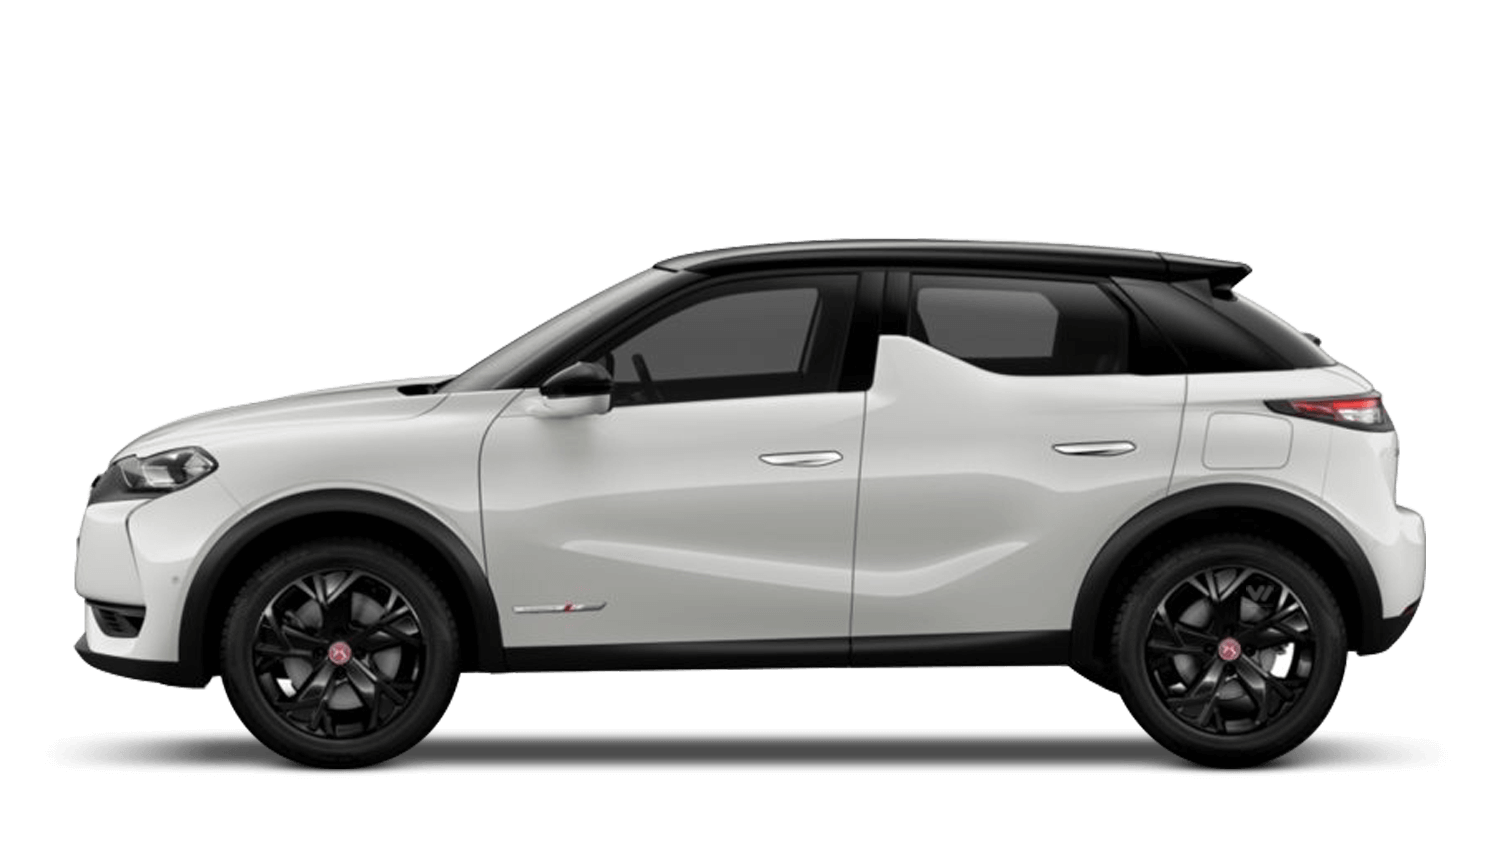 Pearl (Crystal) DS 3 CROSSBACK E-Tense